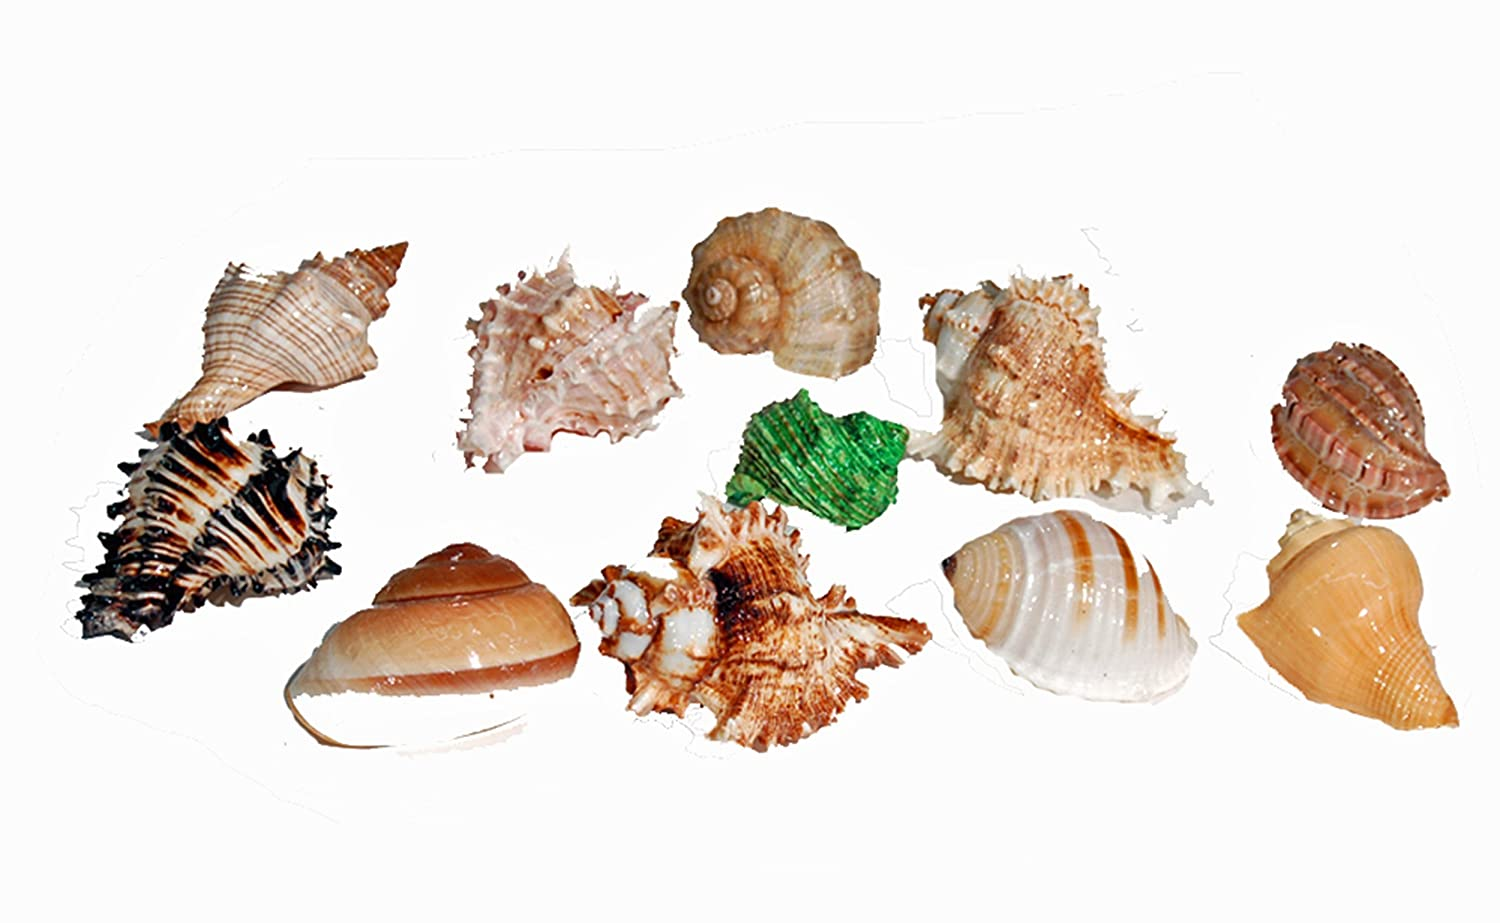 Amazon.com : Florida Marine Research SFM34332 12-Pack Hermit Crab Shell, Large : Pet Supplies